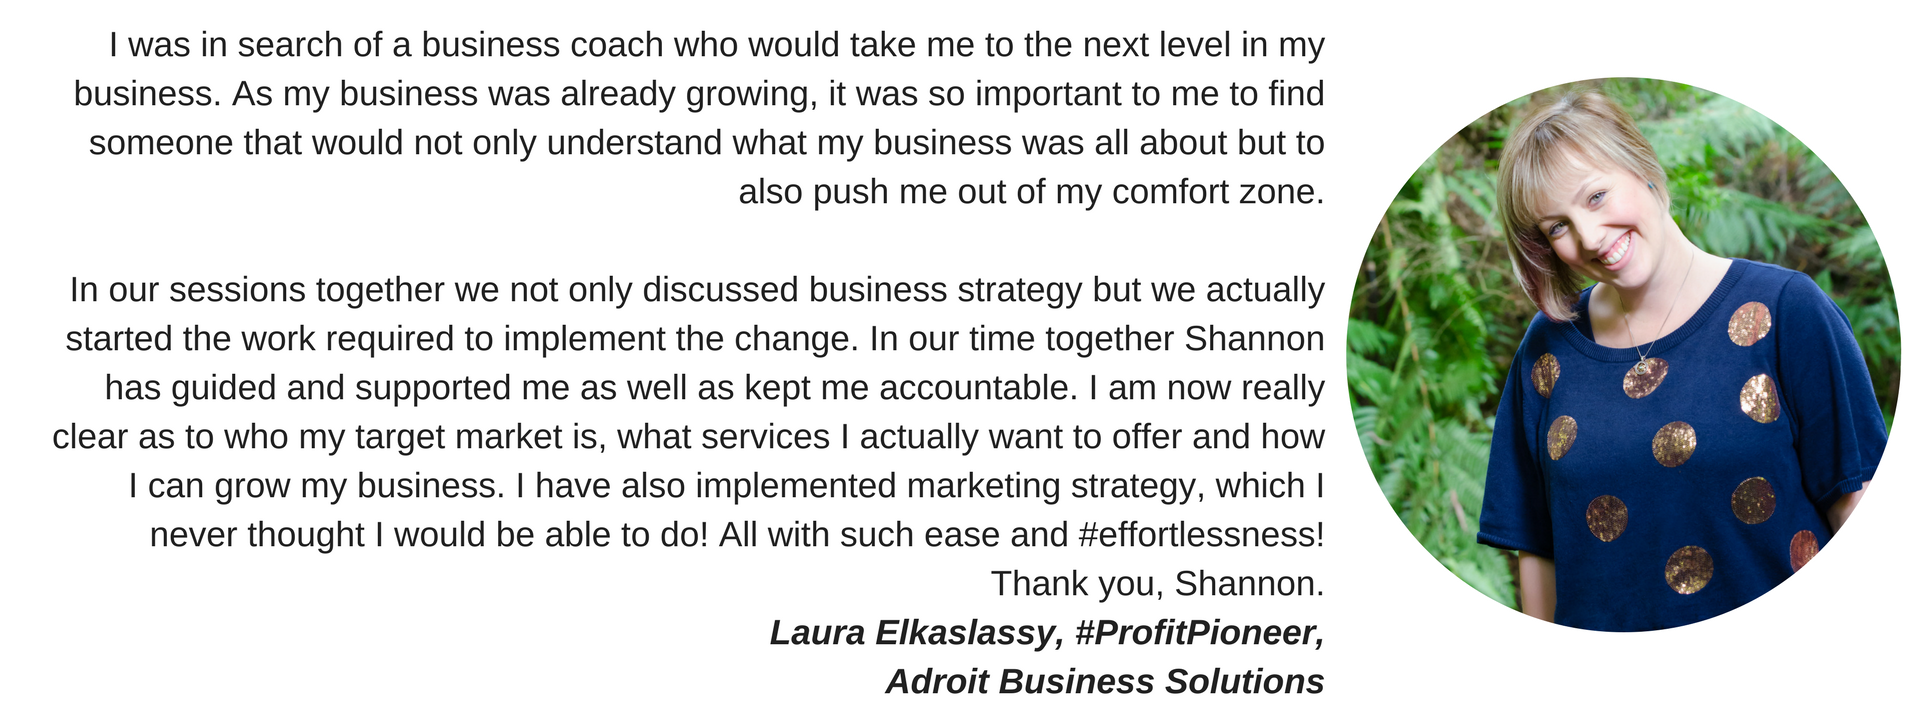 shannon bush business coach laura elkaslassy adroit business solutions | marketing coach Perth